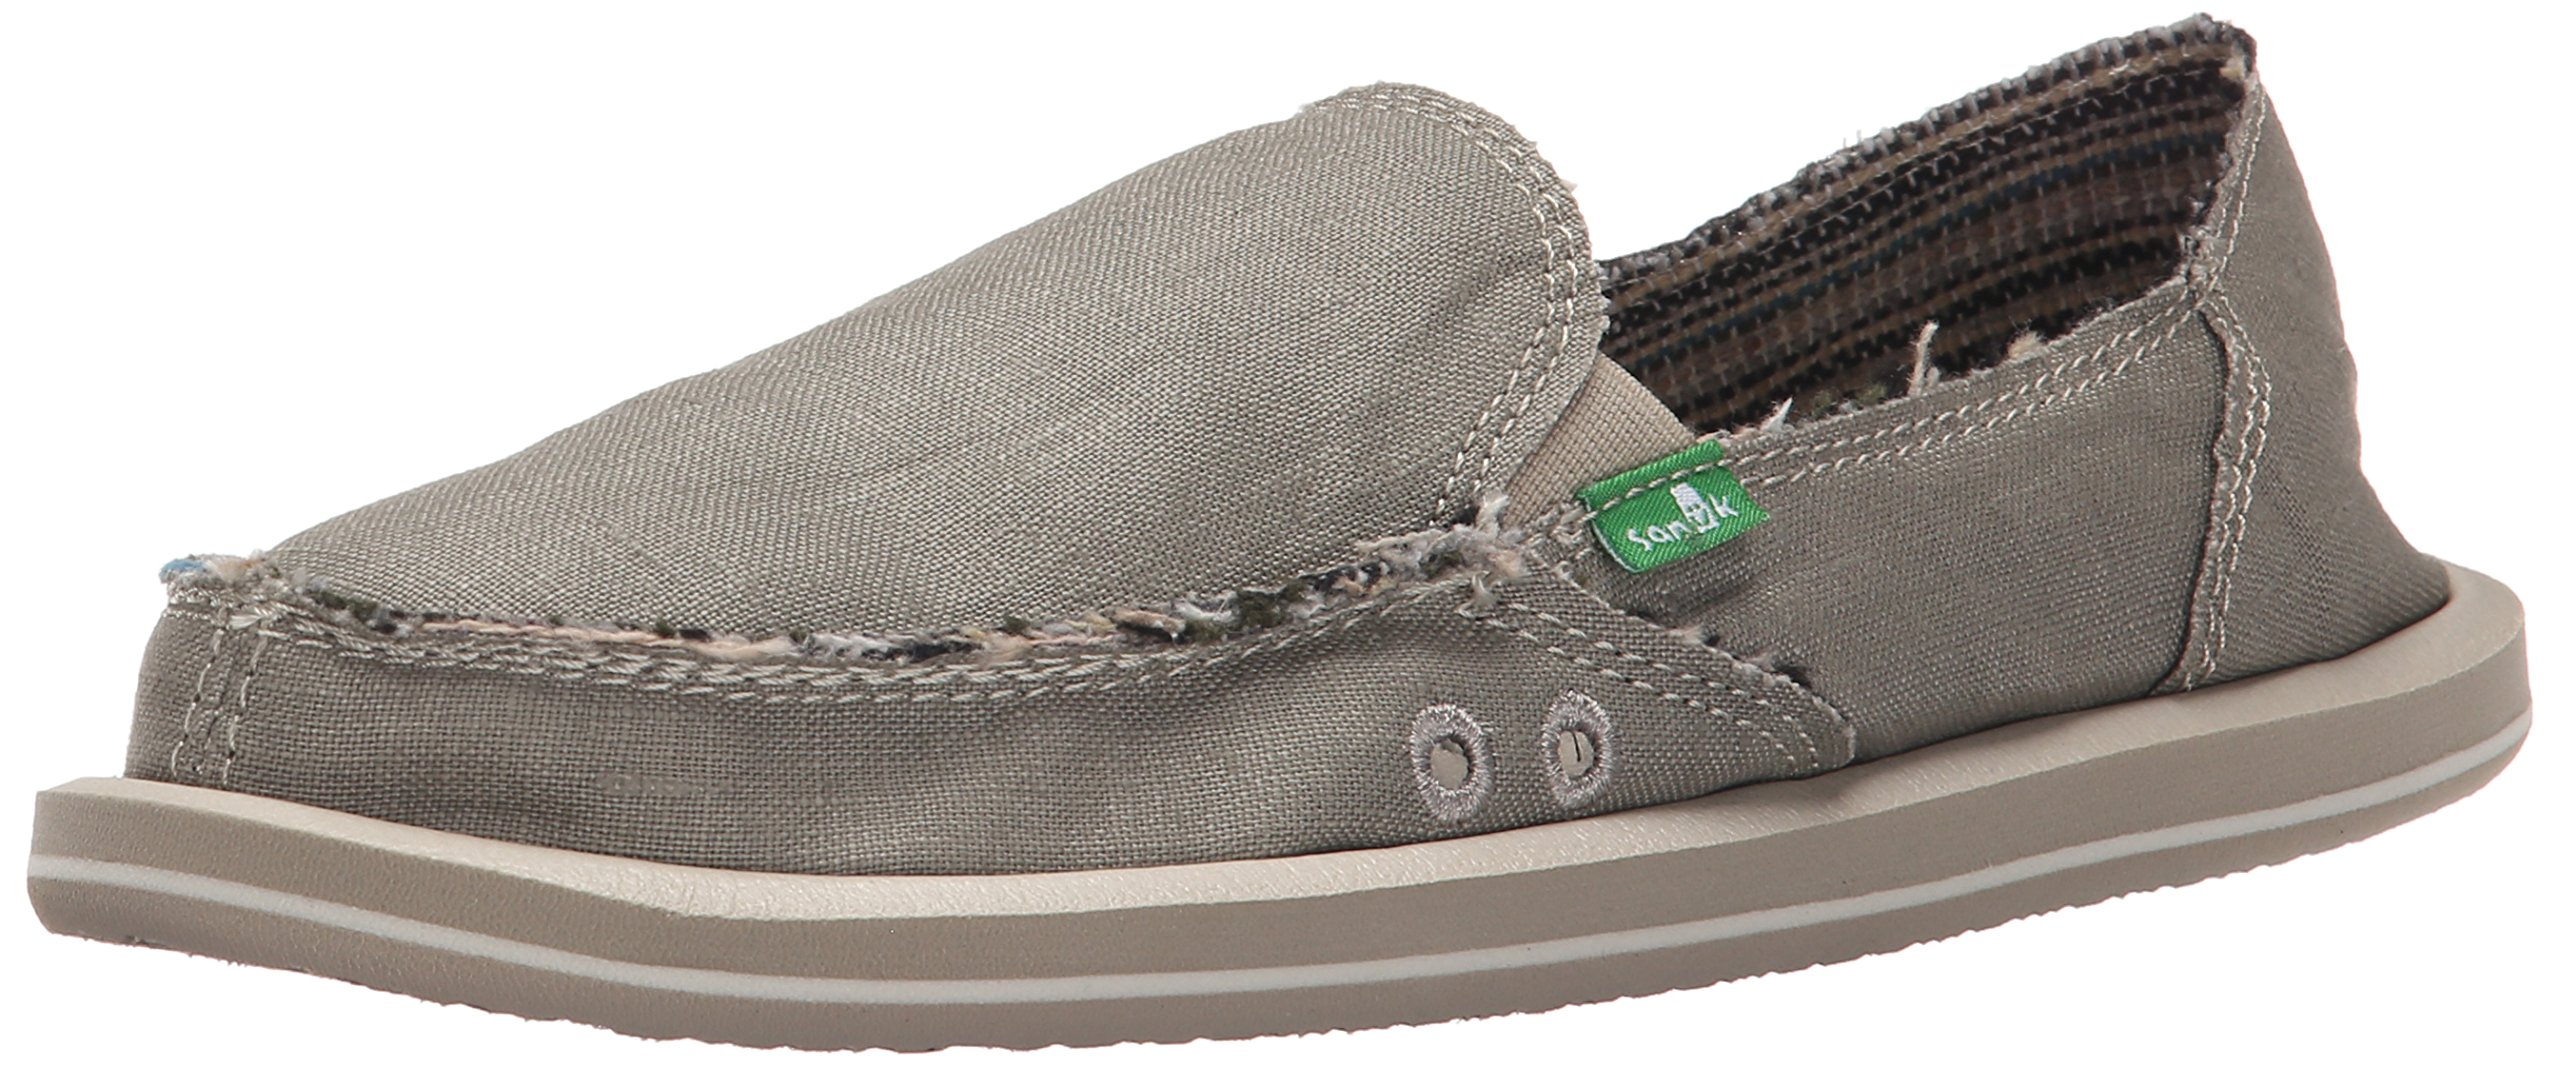 Sanuk Women's Donna Hemp Flat, Olive Grey, 6 M US